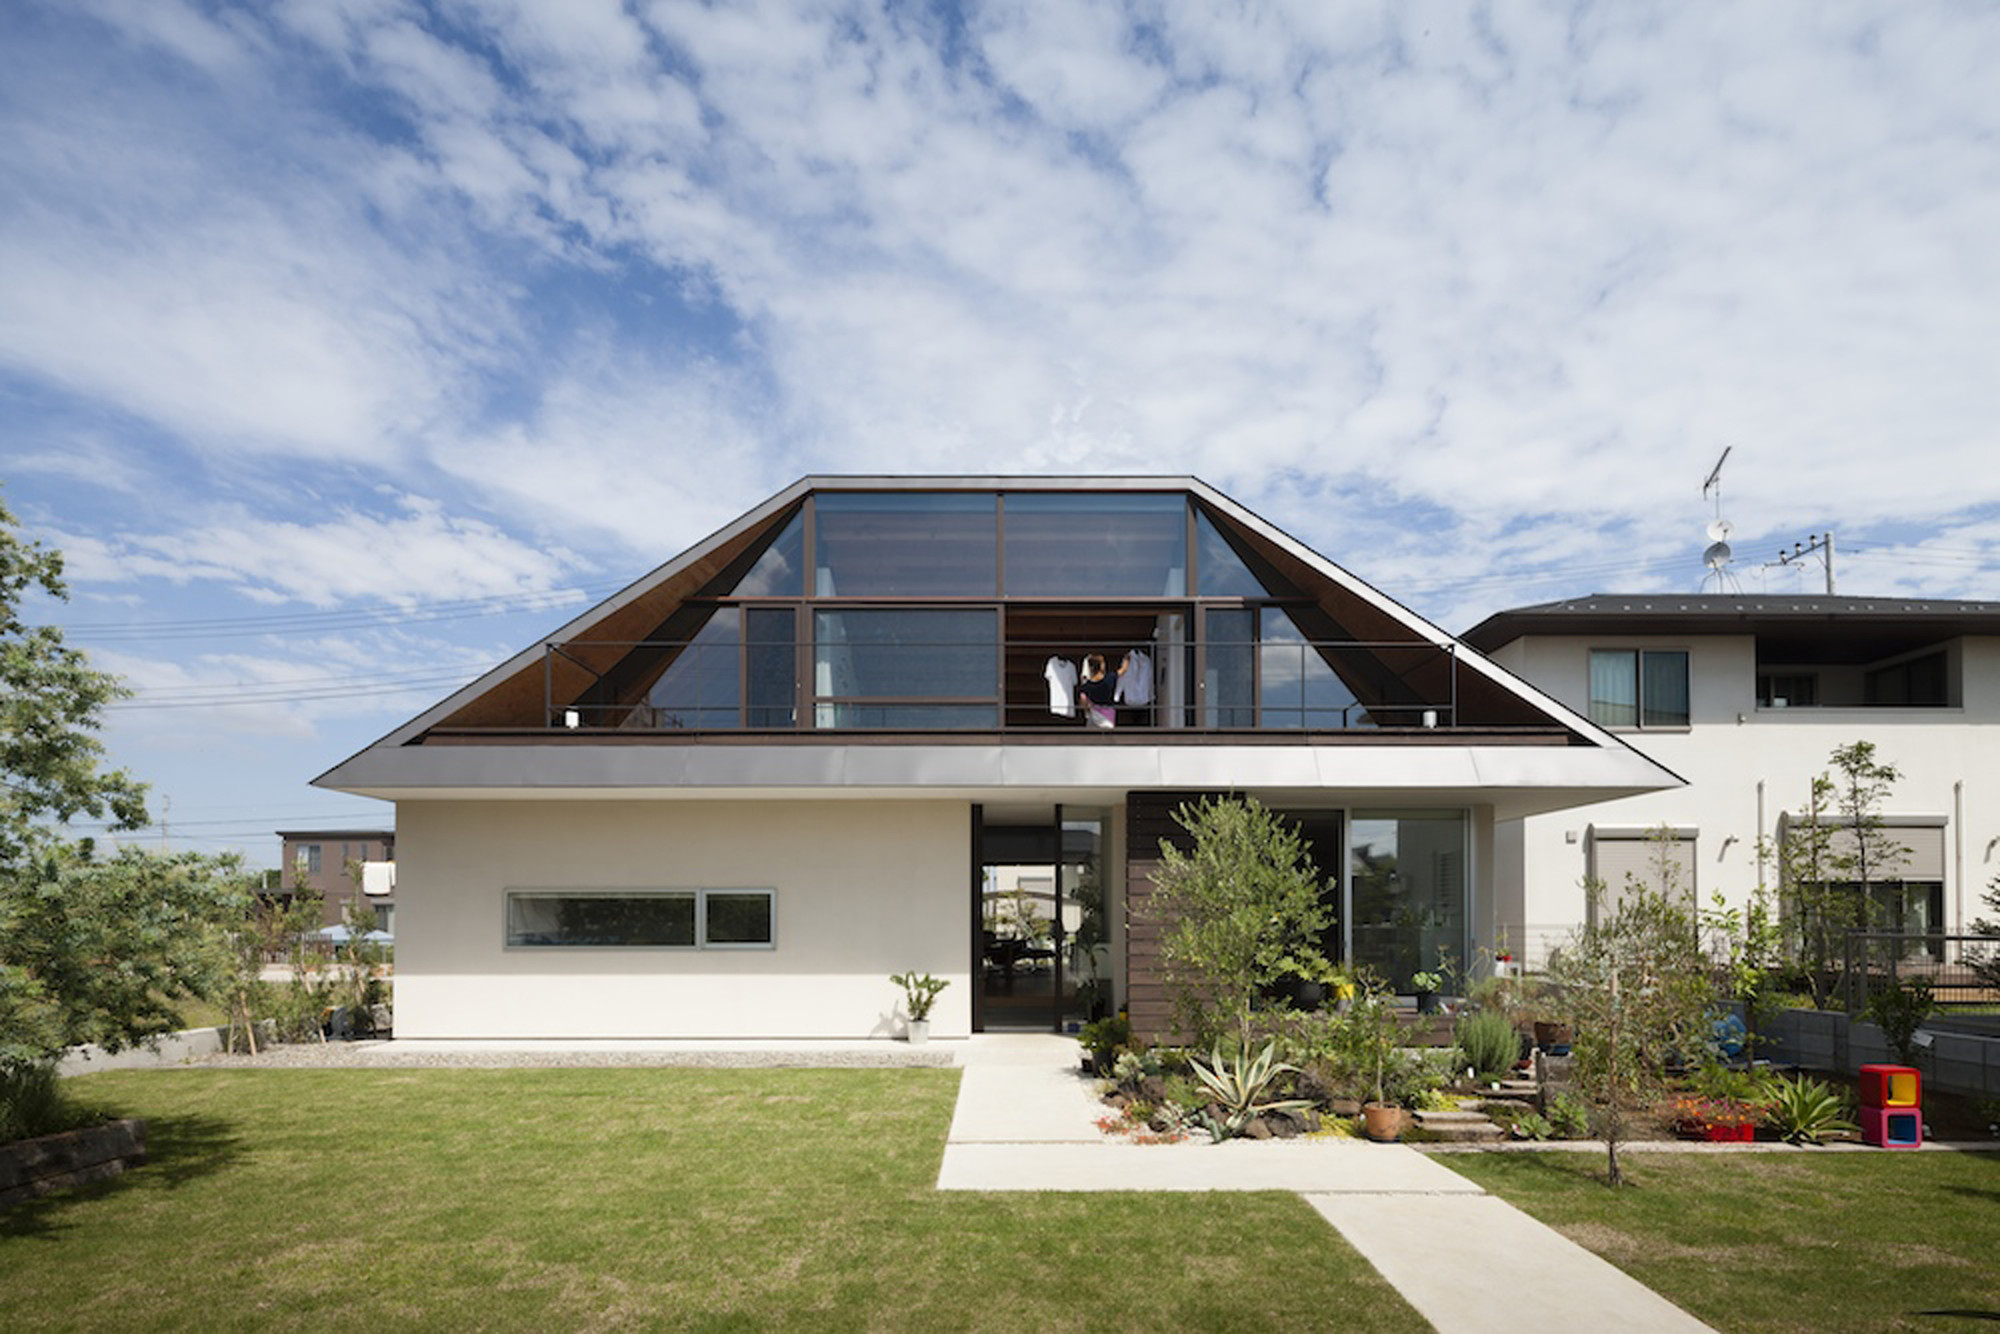 Gallery Of House With A Large Hipped Roof Naoi Architecture Design Office 9